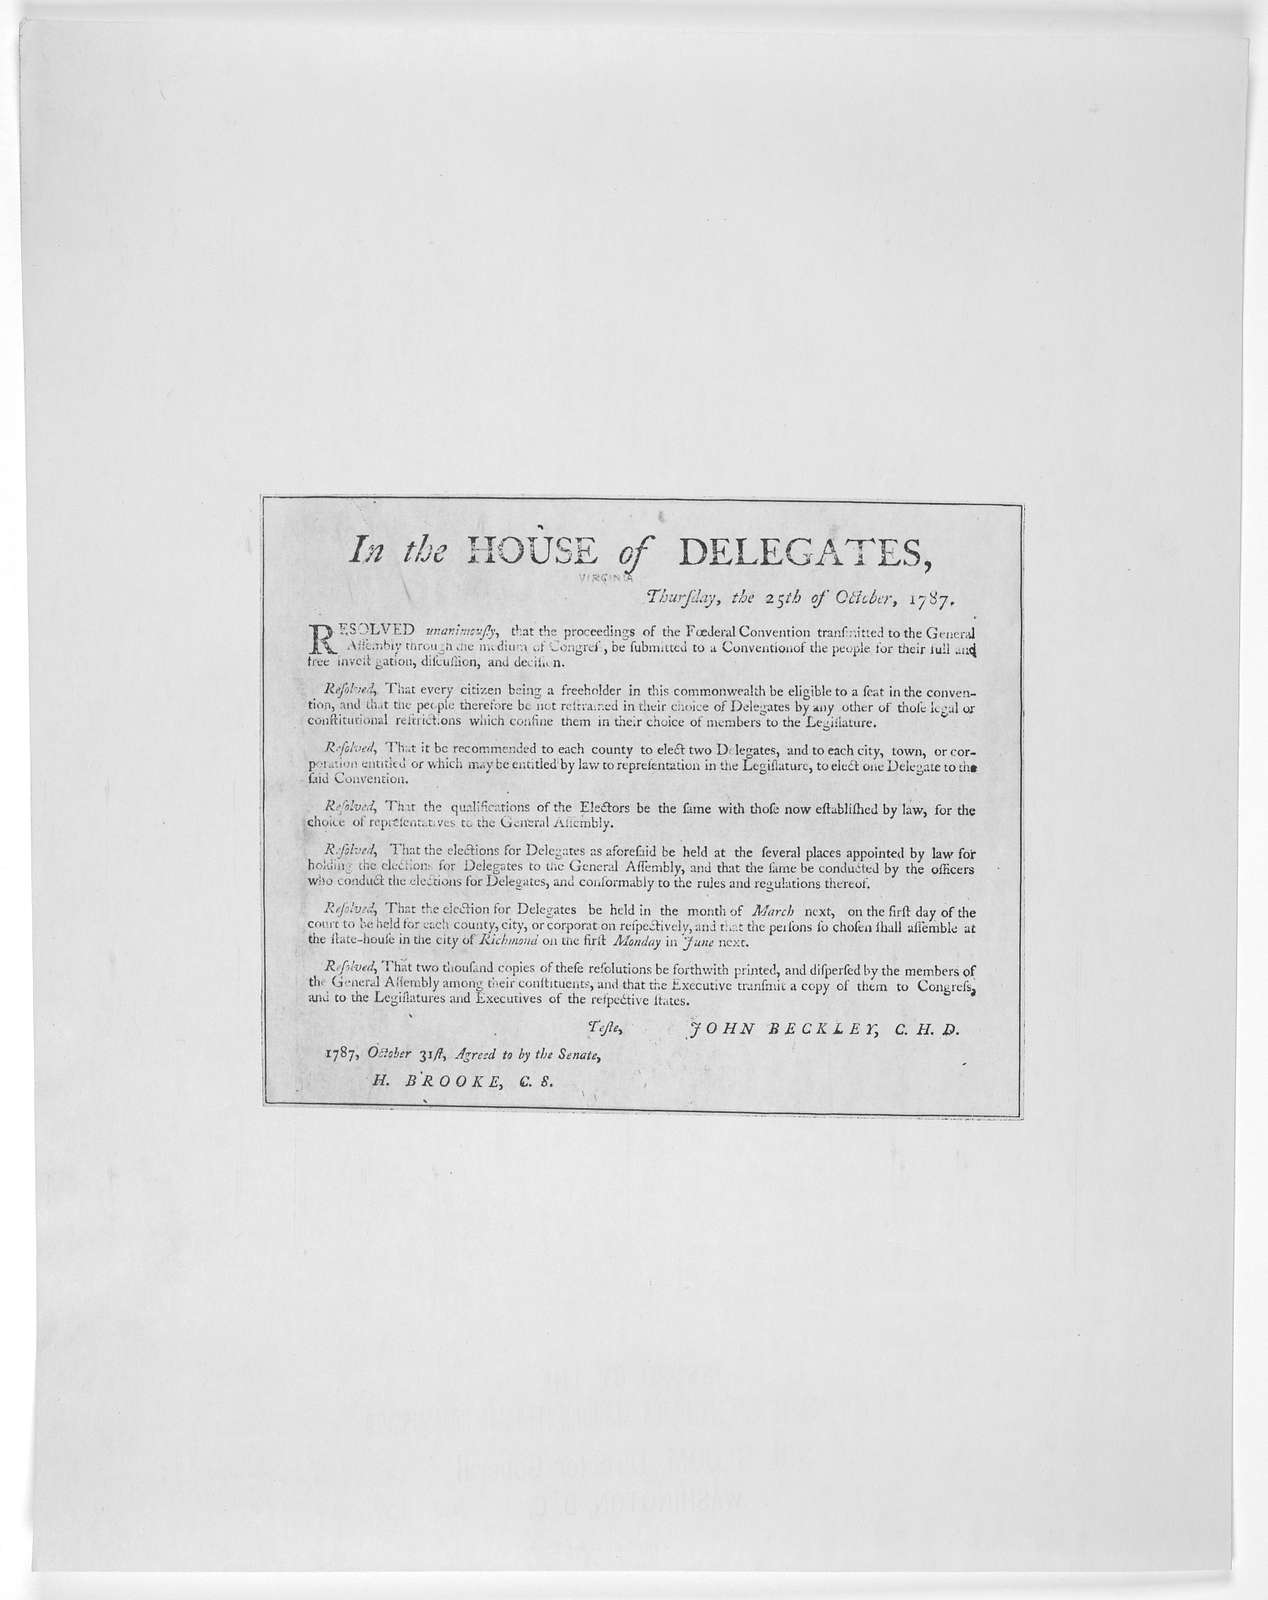 In the House of delegates, Thursday, the 25th of October, 1787. [Seven resolutions for electing delegates to a convention to be held in Richmond on the first Monday in June, 1788, to act upon the proposed federal constitution] John Beckly, C. H.